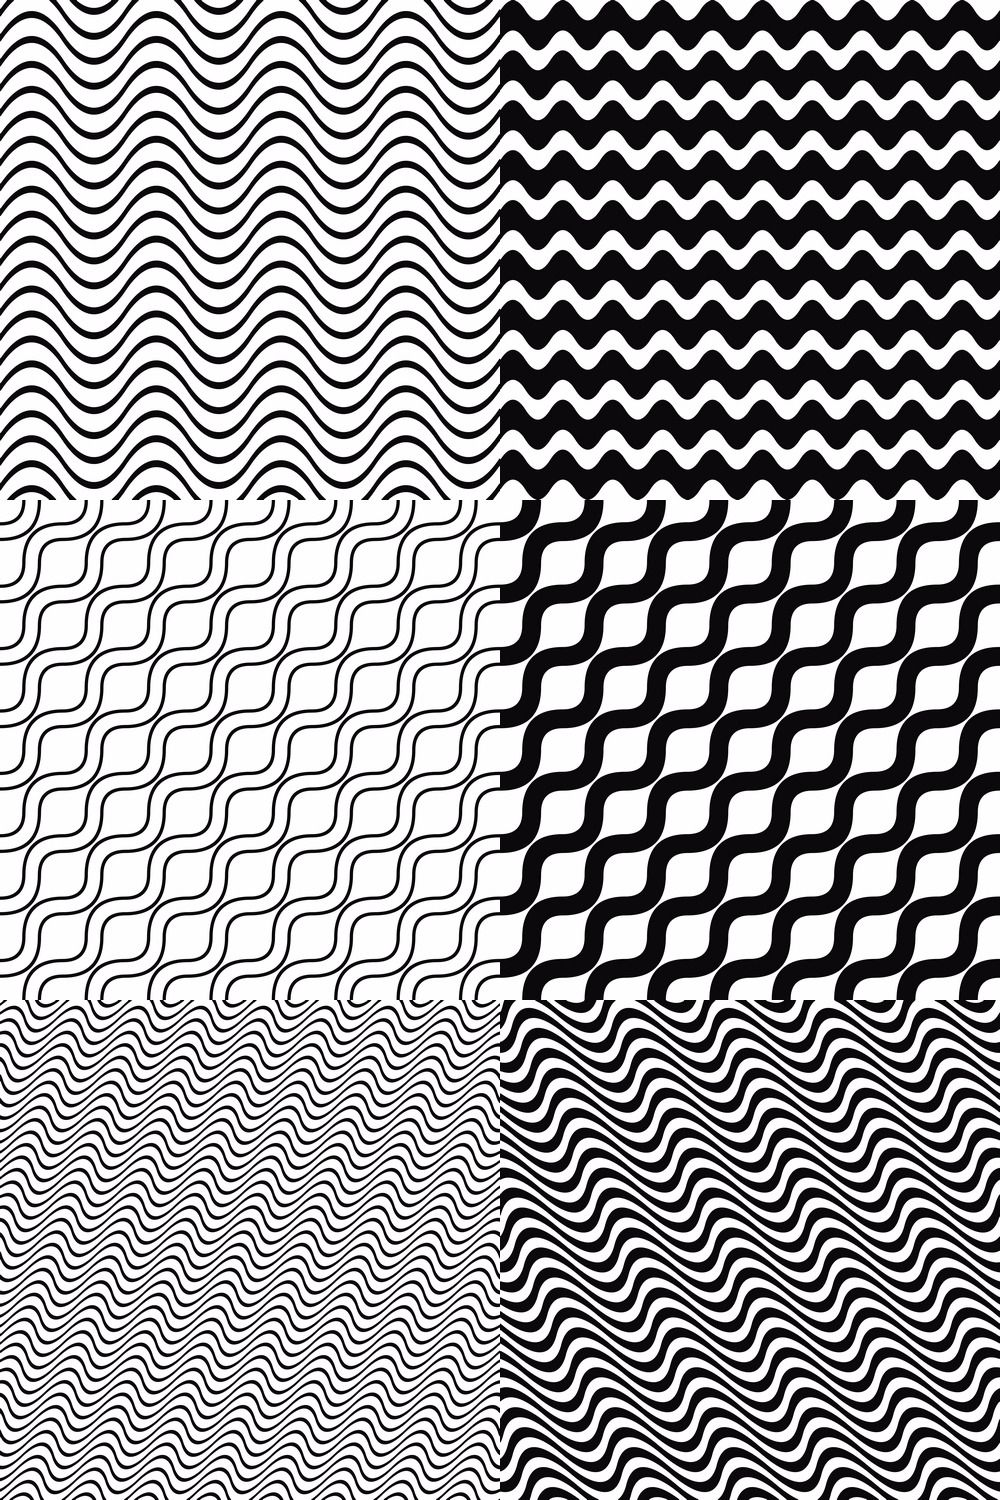 21 Seamless Black And White Wave Line Pattern Backgrounds